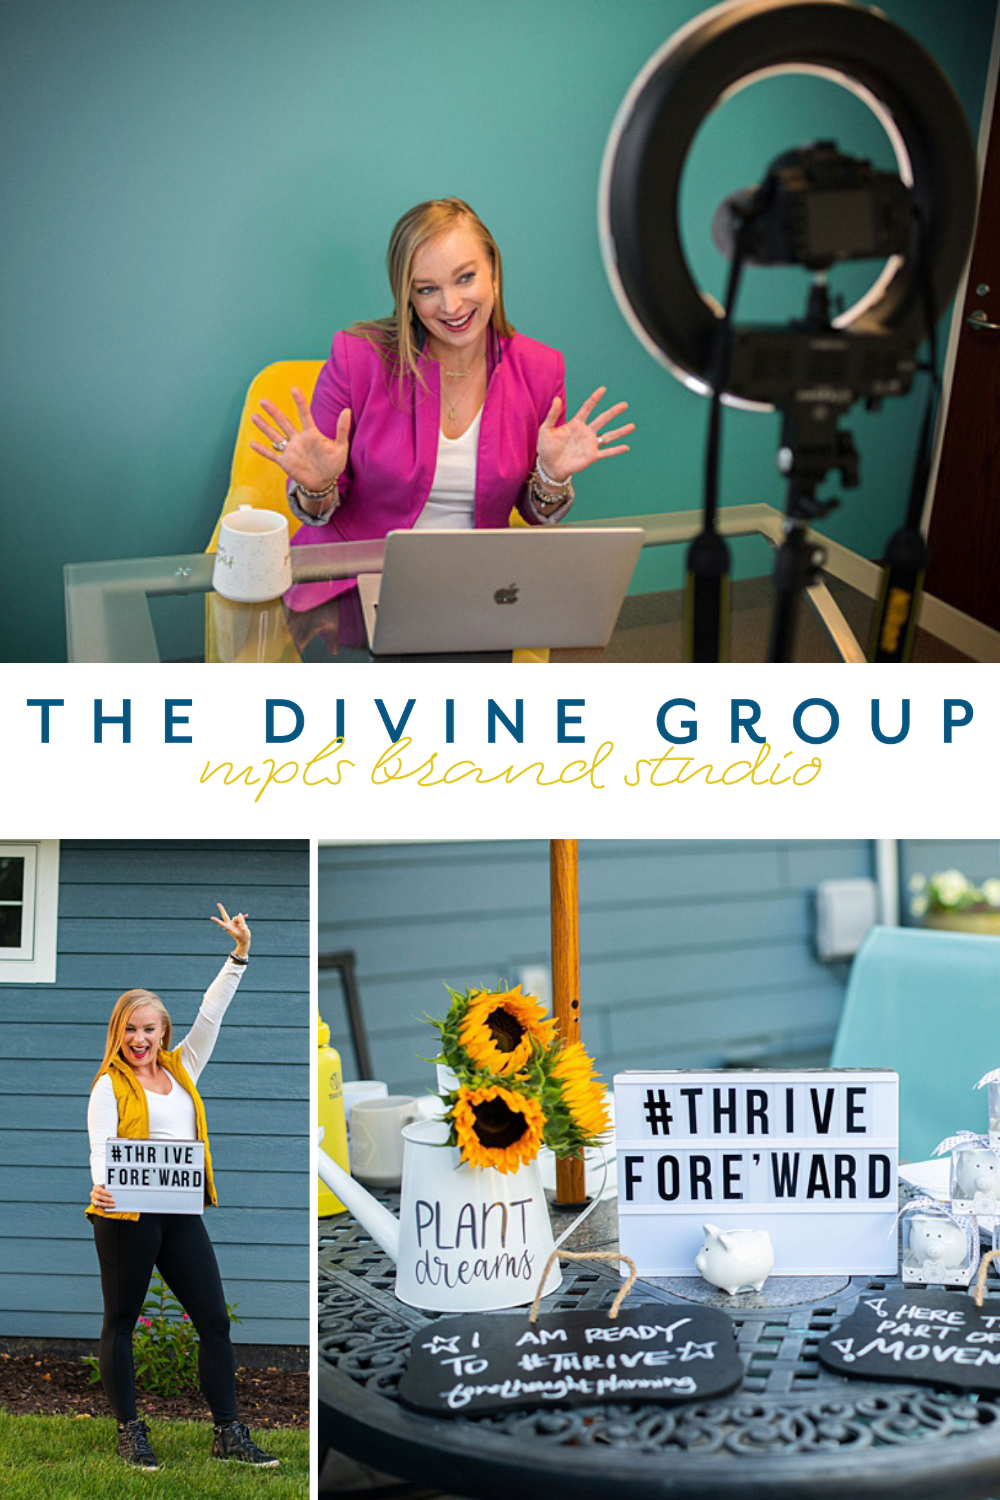 These photos are from two brand photography sessions we did for Shannon of Forethought Planning so she could create consistent content for her finance firm and her podcast, Thrive For[e]ward. Check out the images and stories from our session on the blog. | The Divine Group | Minneapolis brand photography | #brandphotography #personalbrand #brandsession | https://thedivinegroup.co/ twin-cities-brand-photography-for-financial-advisor-change-maker-and-podcaster